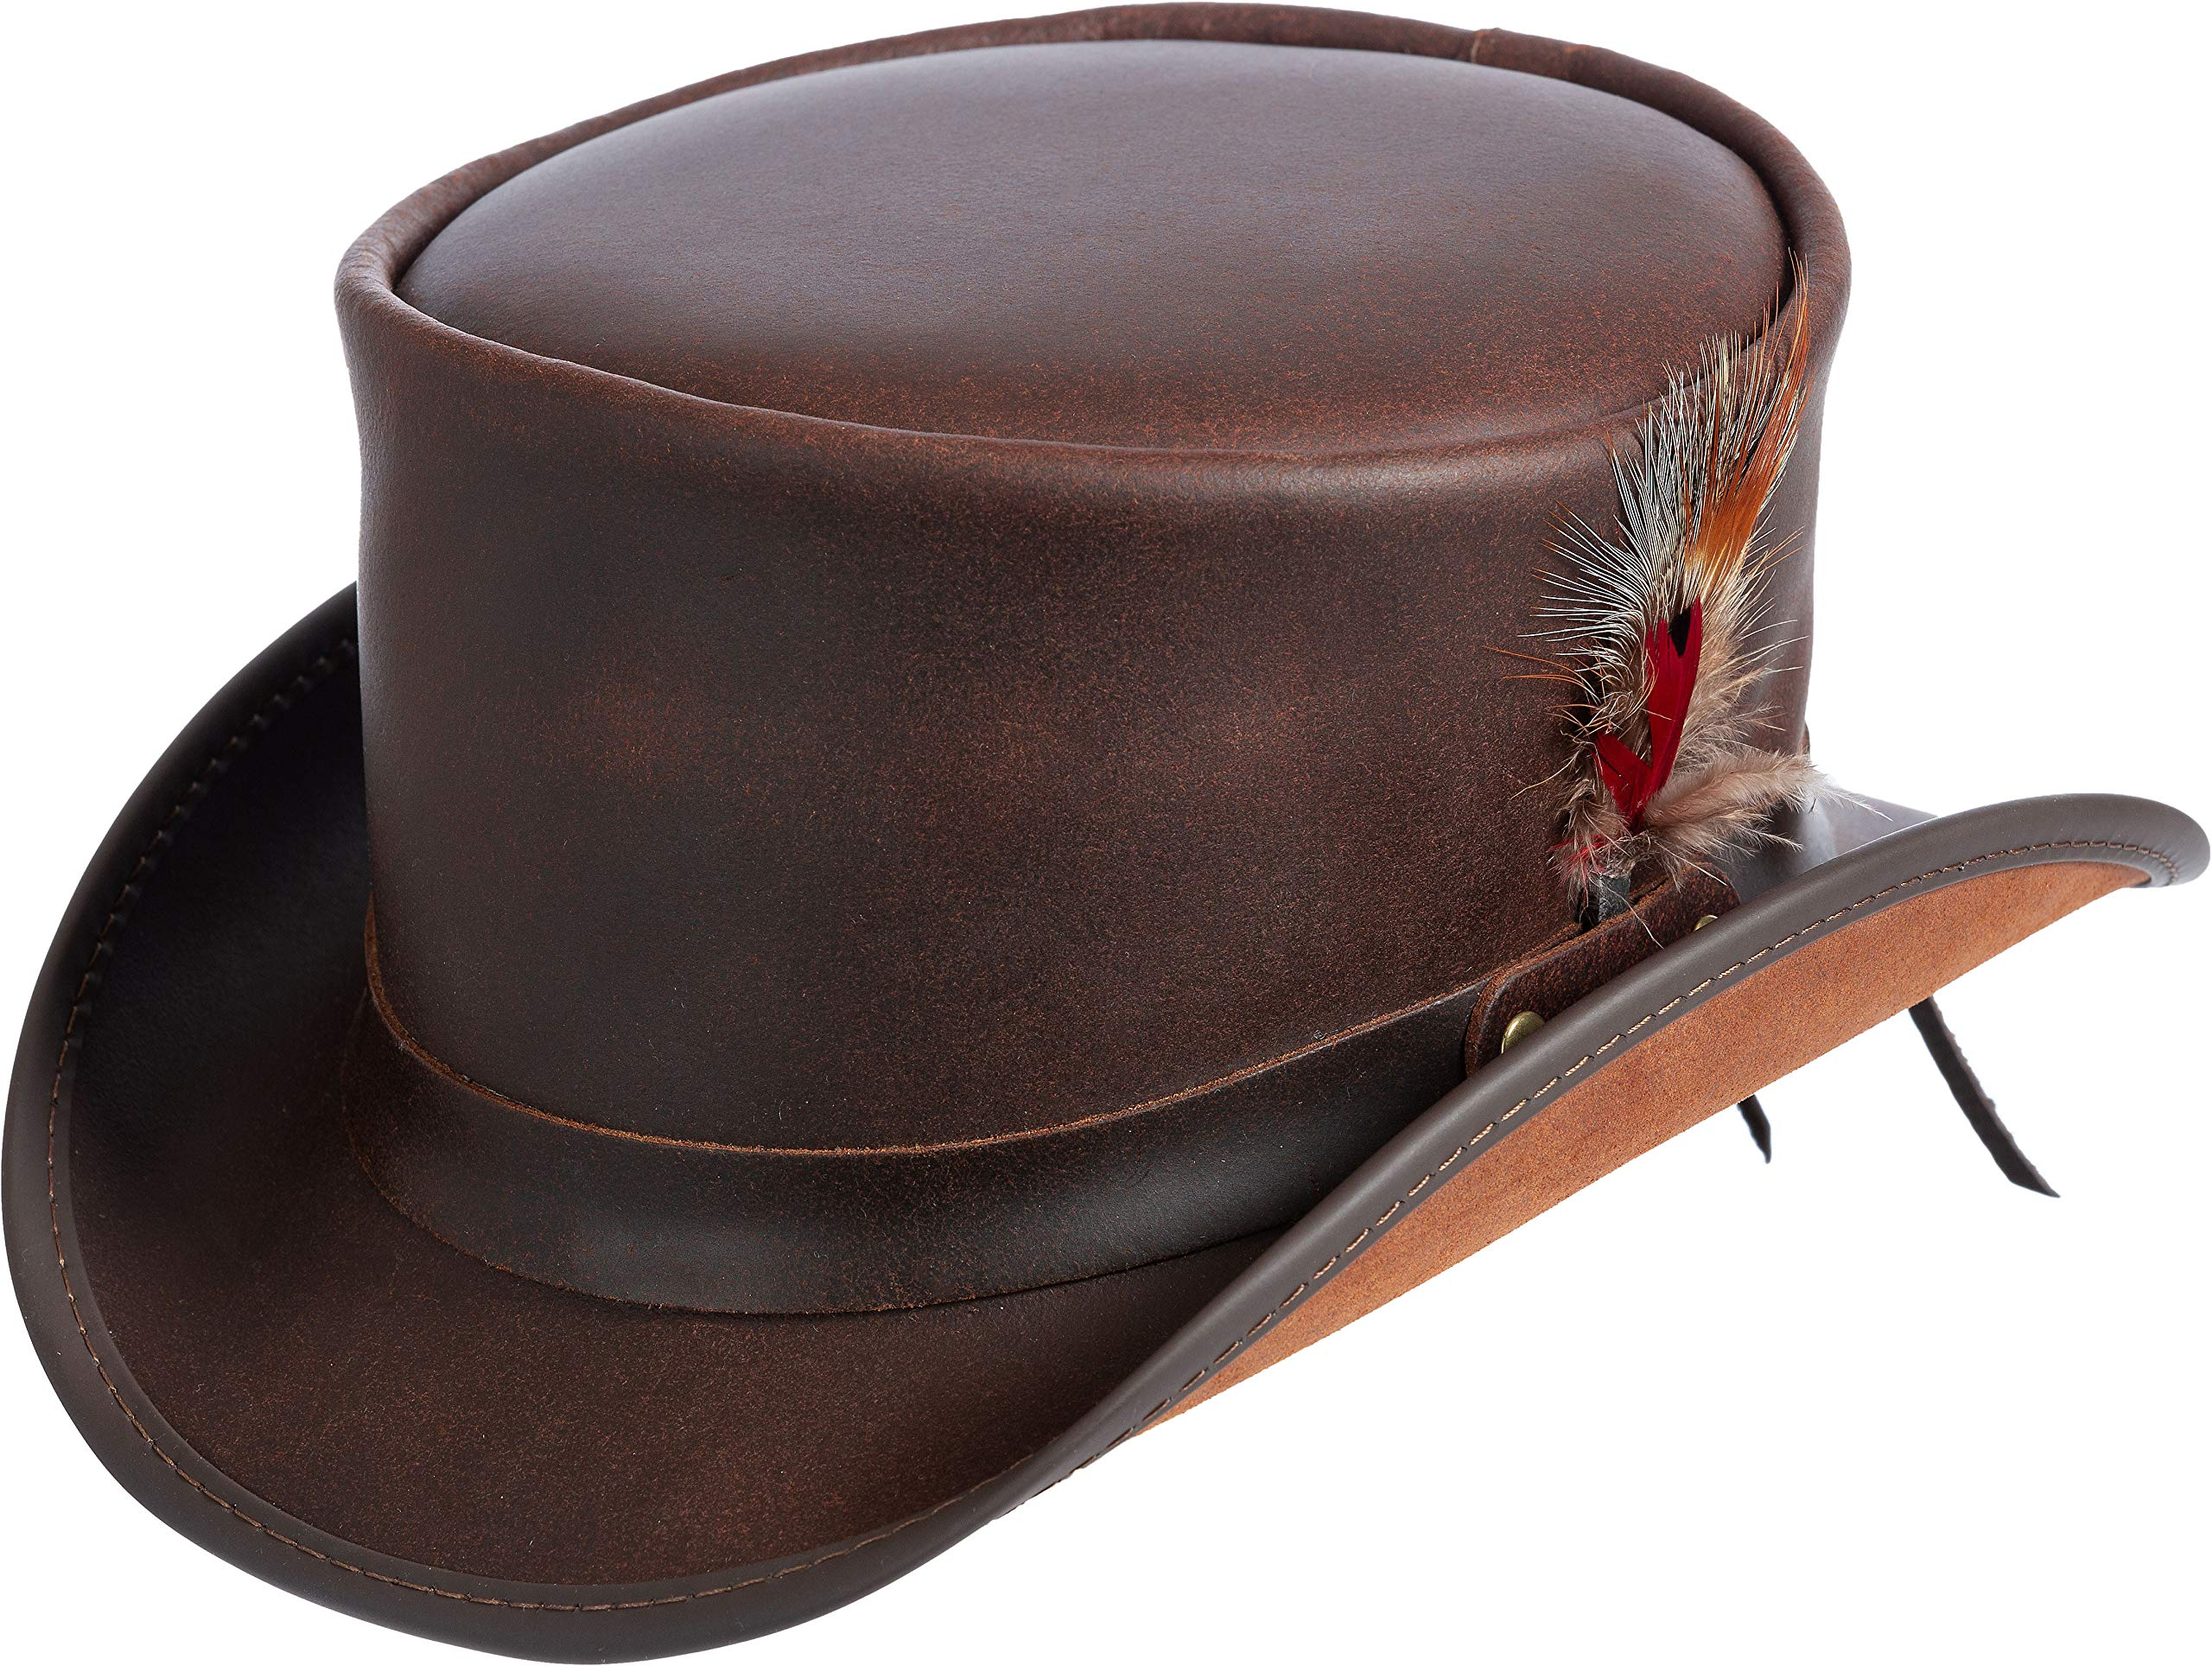 Steampunk Victorian Marlow Leather Top Hat Brown by Overland Sheepskin Co